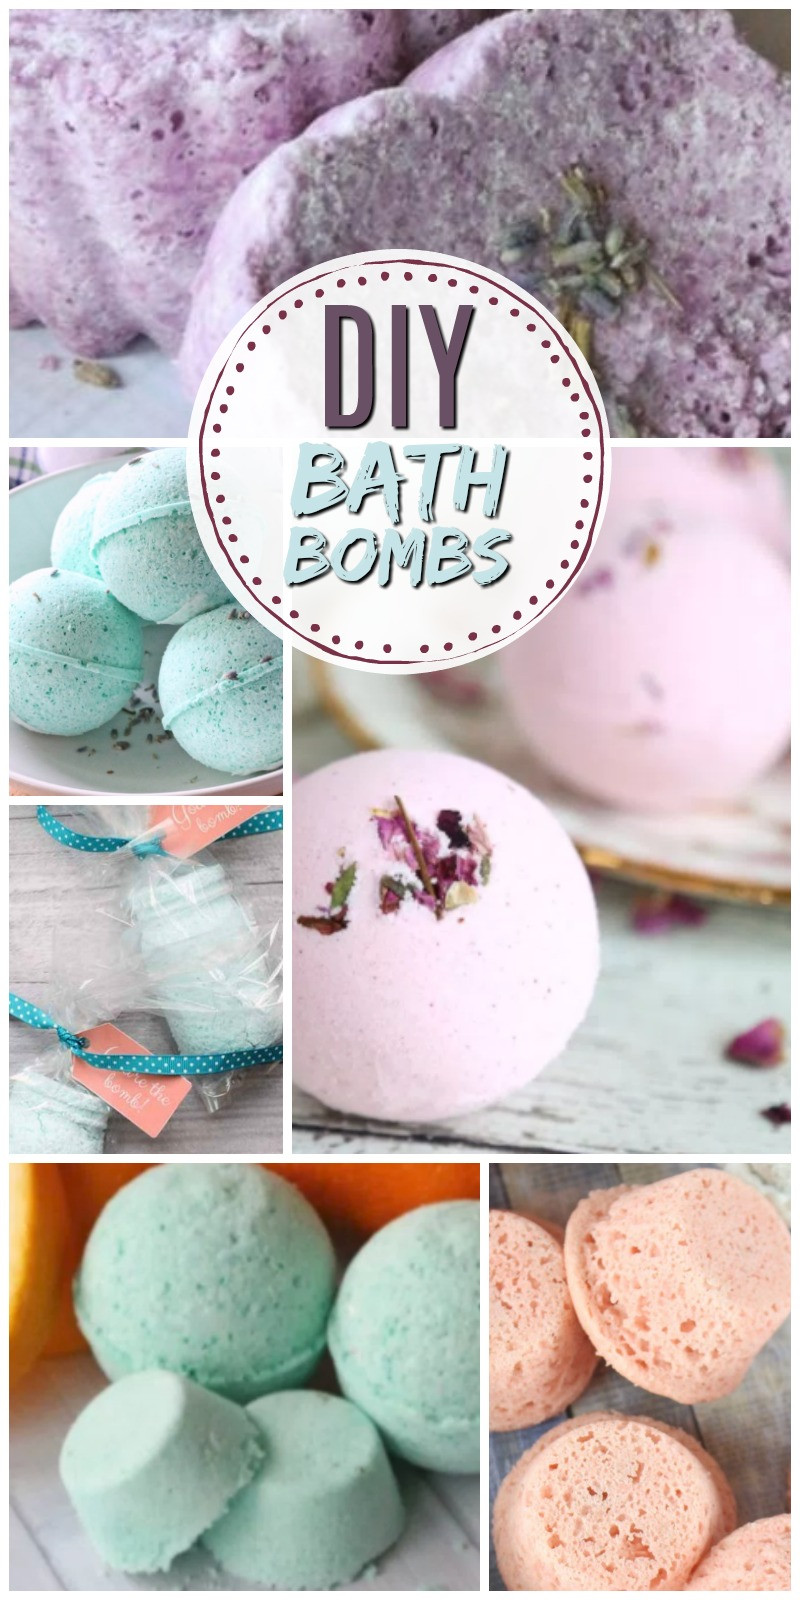 Best ideas about DIY Bath Bomb . Save or Pin The Best DIY Bath Bomb Recipes to Make Yourself Creative Now.